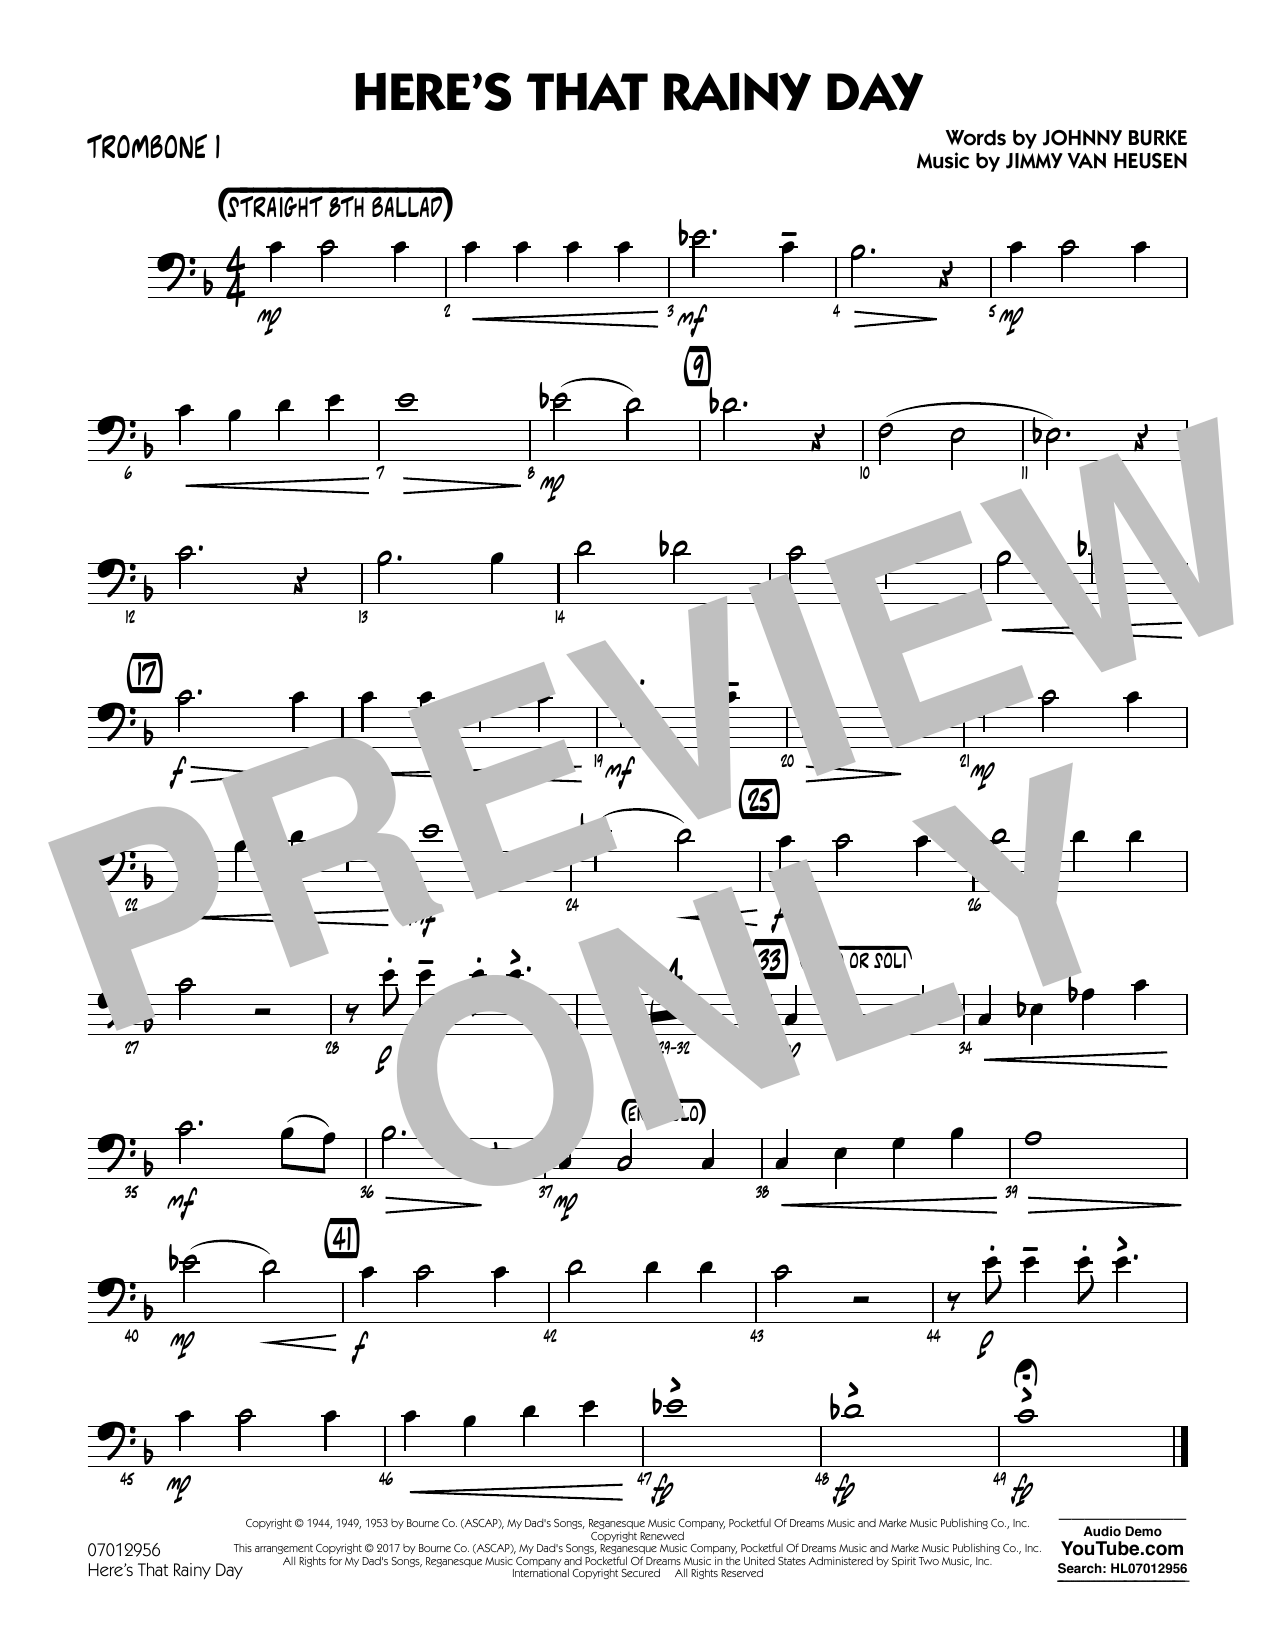 Rick Stitzel Here's That Rainy Day - Trombone 1 sheet music notes and chords. Download Printable PDF.